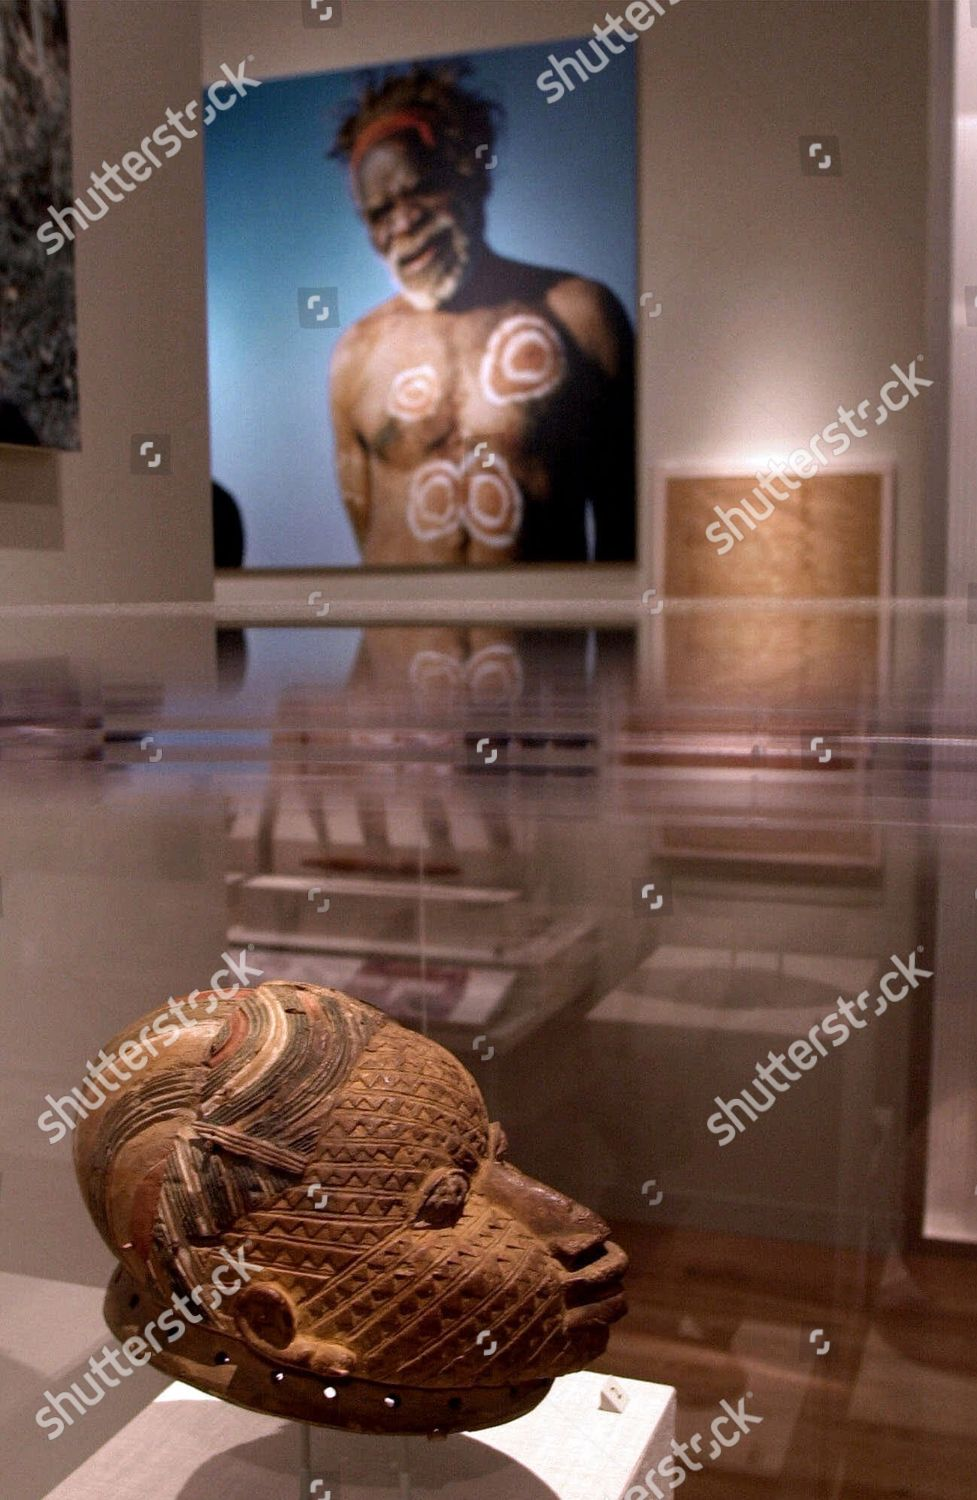 Body Art Exhibit Body Art Marks Identity Editorial Stock Photo Stock Image Shutterstock